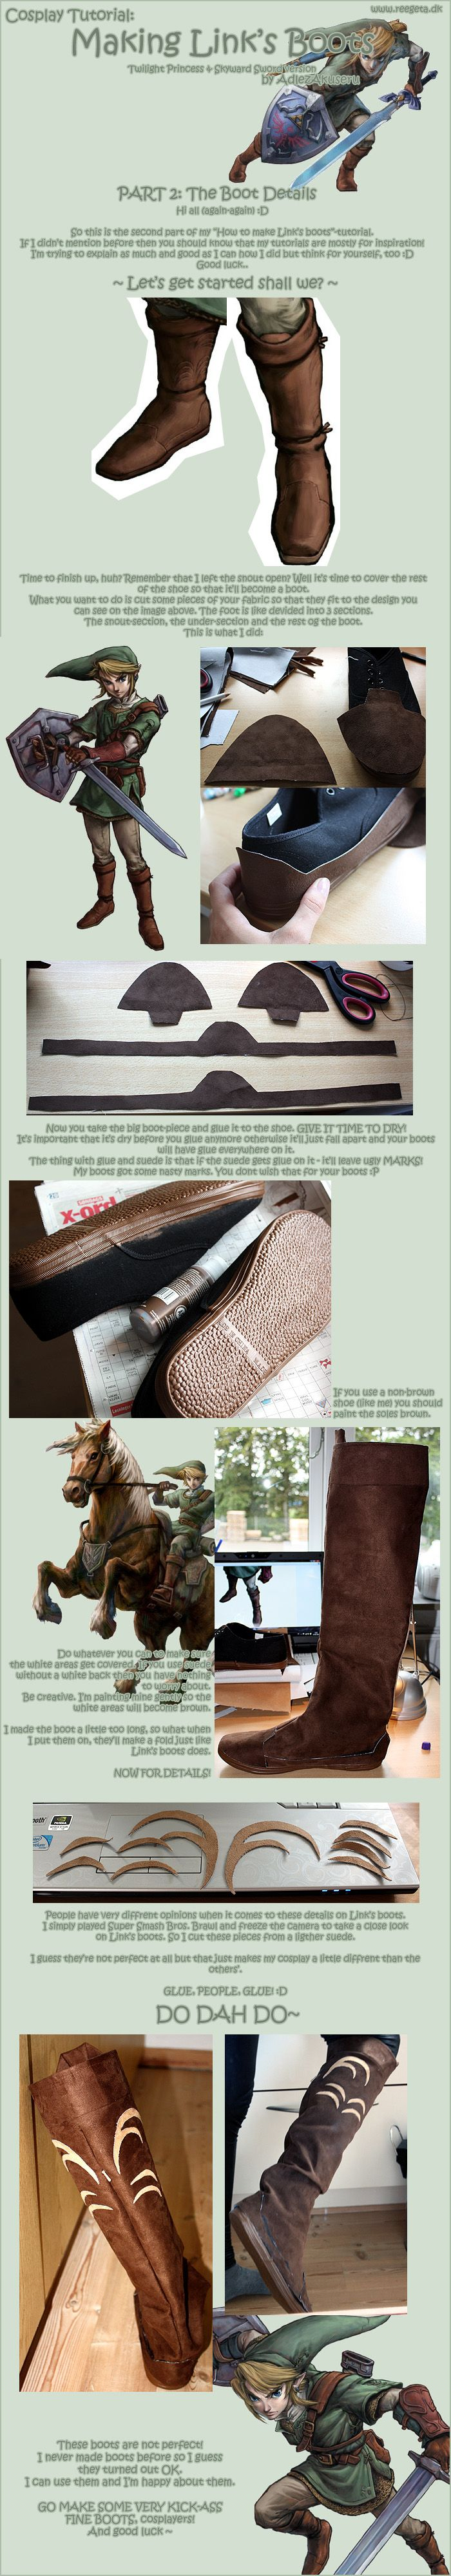 Tutorial links boots part 2 by adlez axel on deviantart tutorial links boots part 2 by adlez axel on deviantart baditri Images